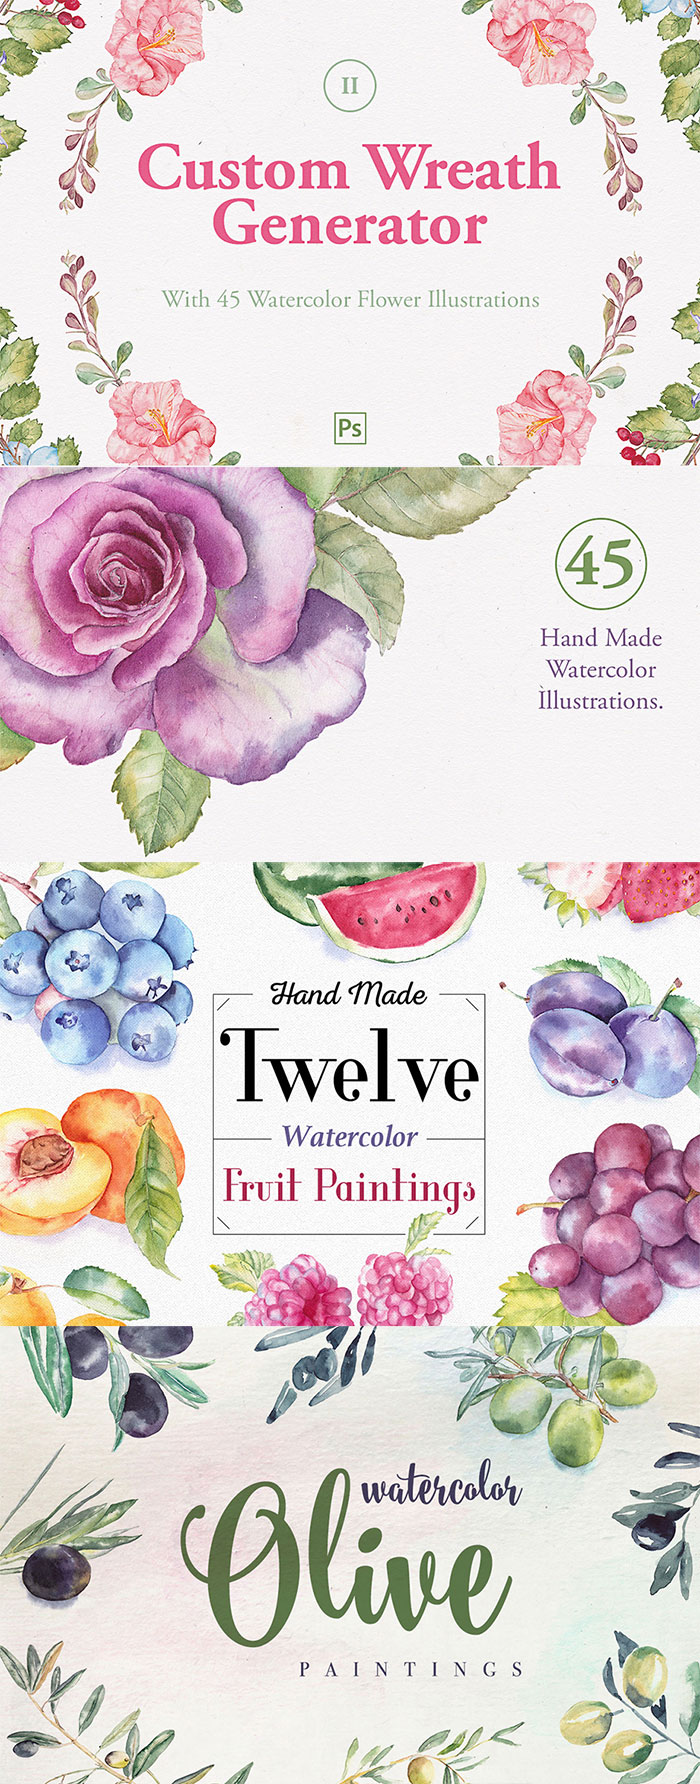 Hand Drawn Design Trend in the Digital Designer's Artistic Toolkit. Custom Wreath Creator With Flowers + 2, Fruit Watercolor Illustrations and Olive Watercolor Paintings from Emine Gayiran. Find more on www.DesignYourOwnBlog.com